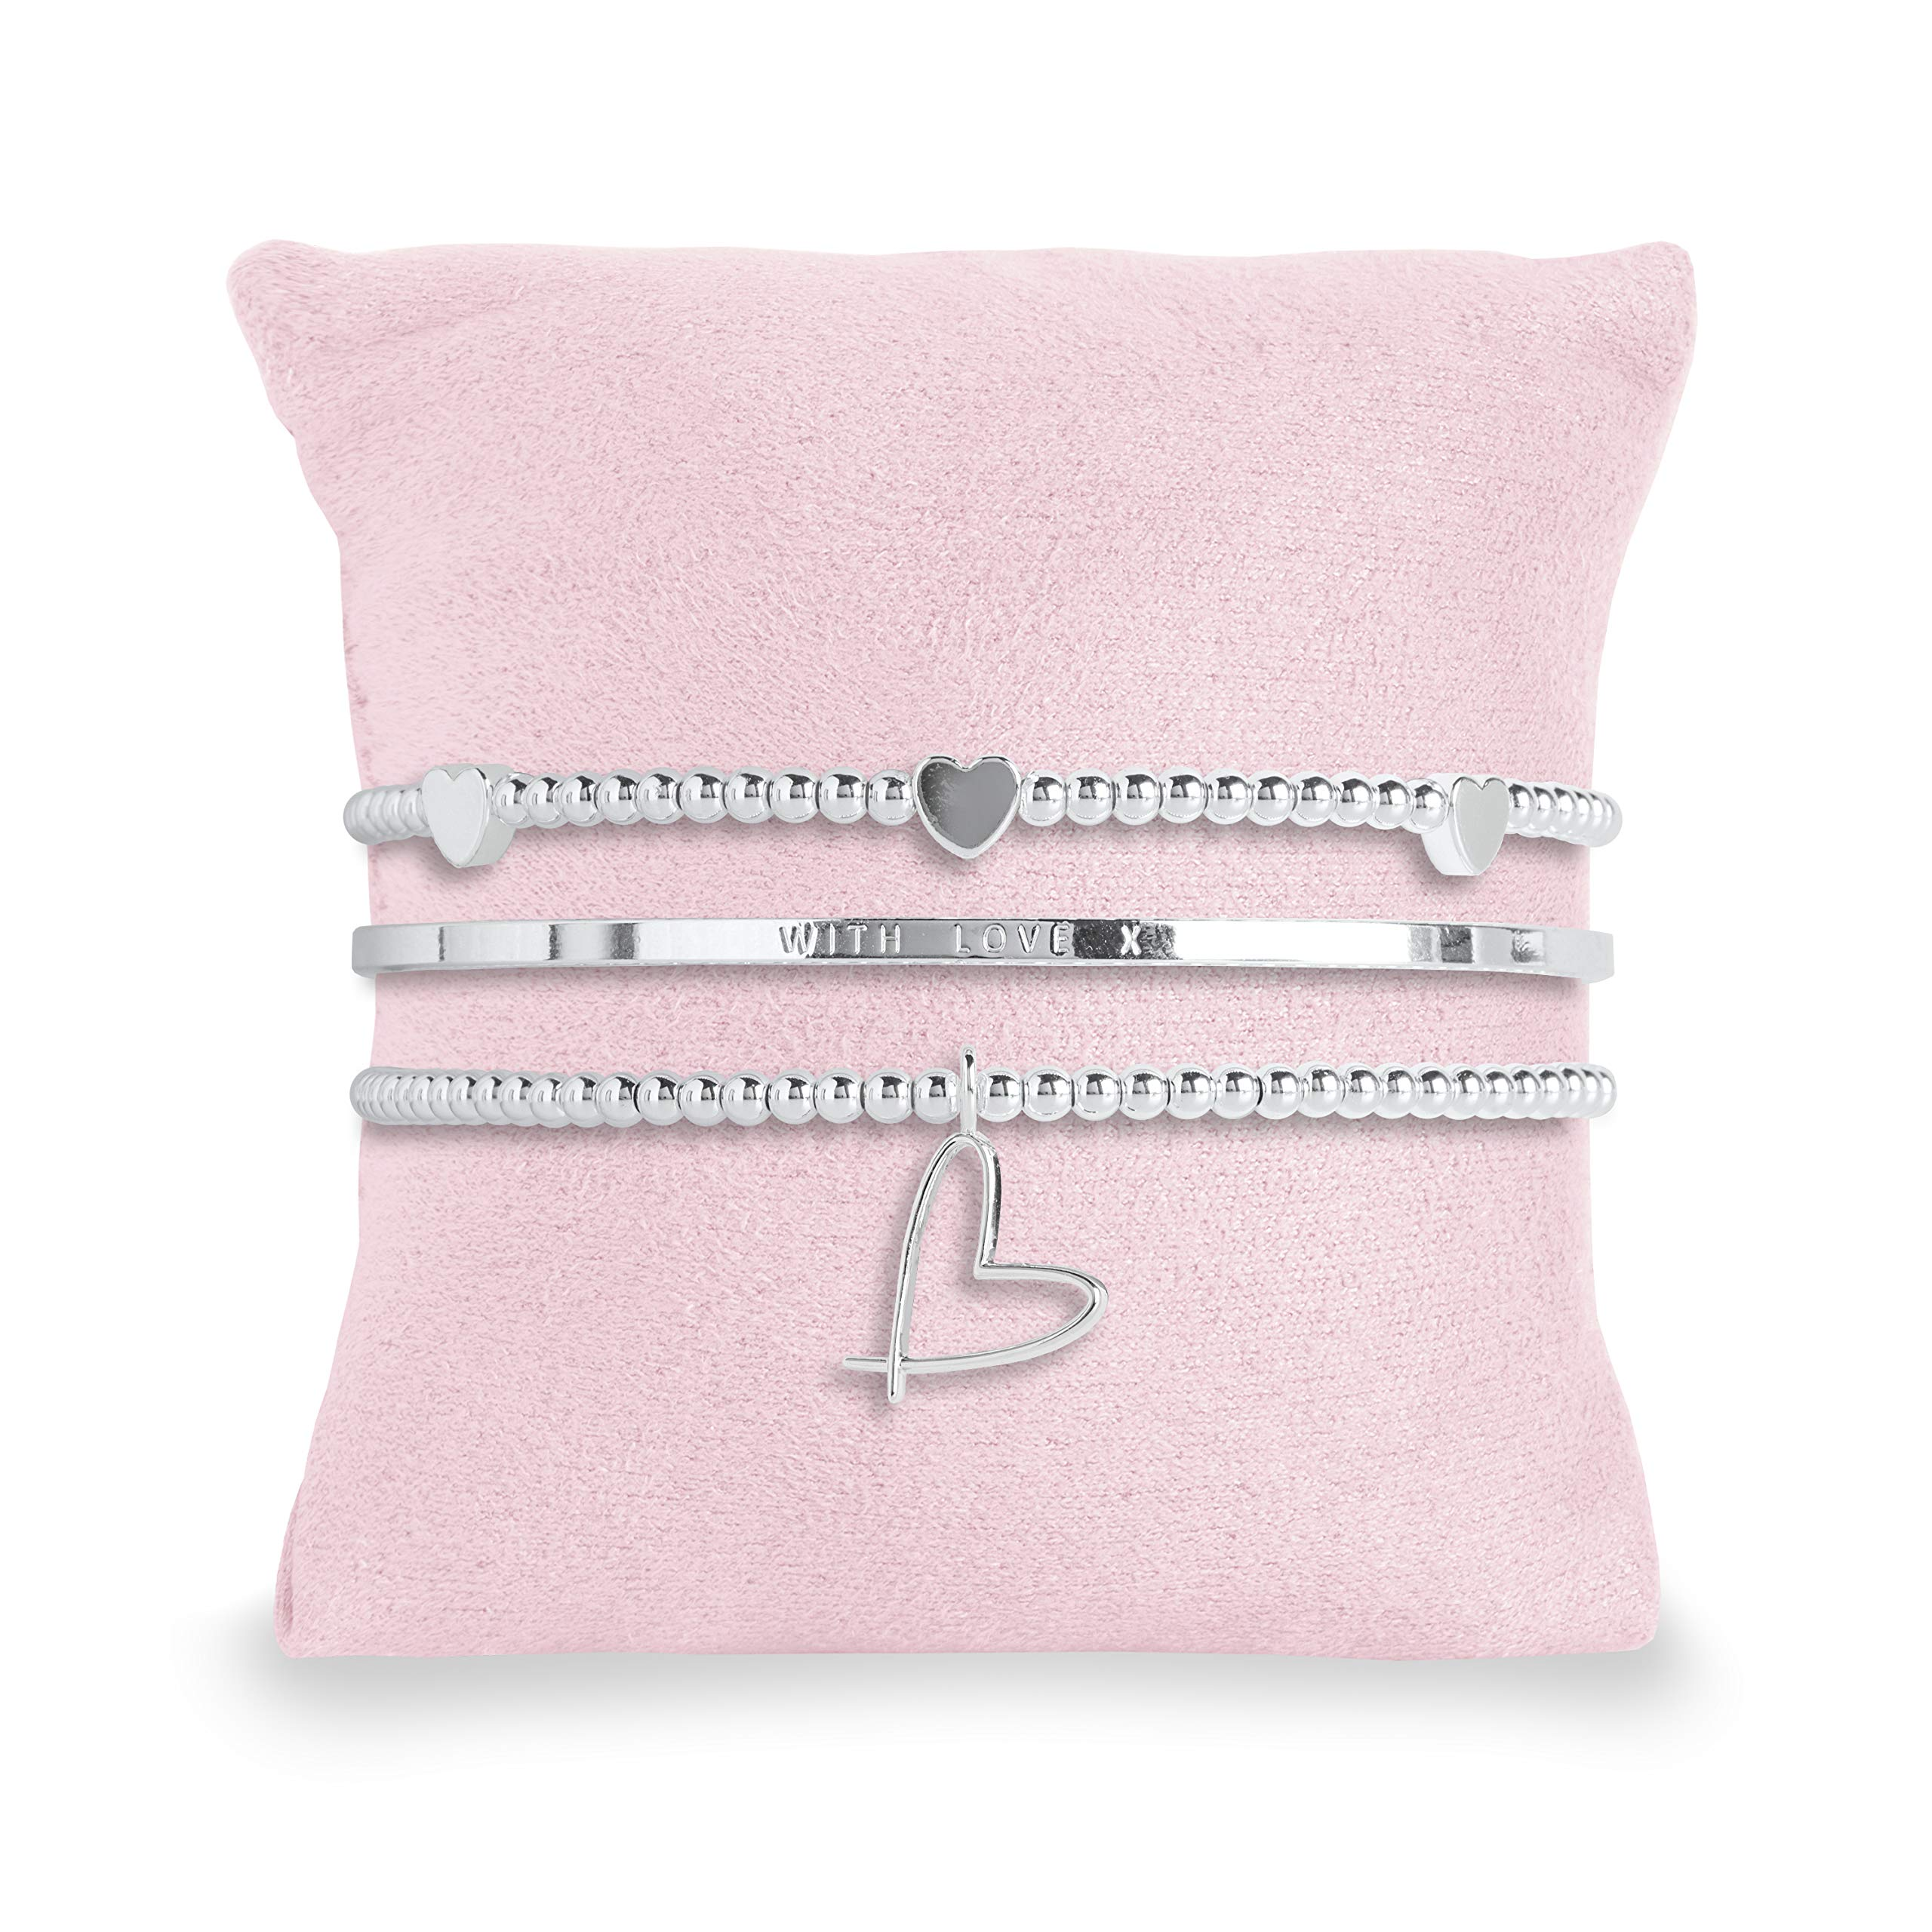 Katie Loxton - Occasion Gift Box - with Love - 3 Silver Stacking Bracelets